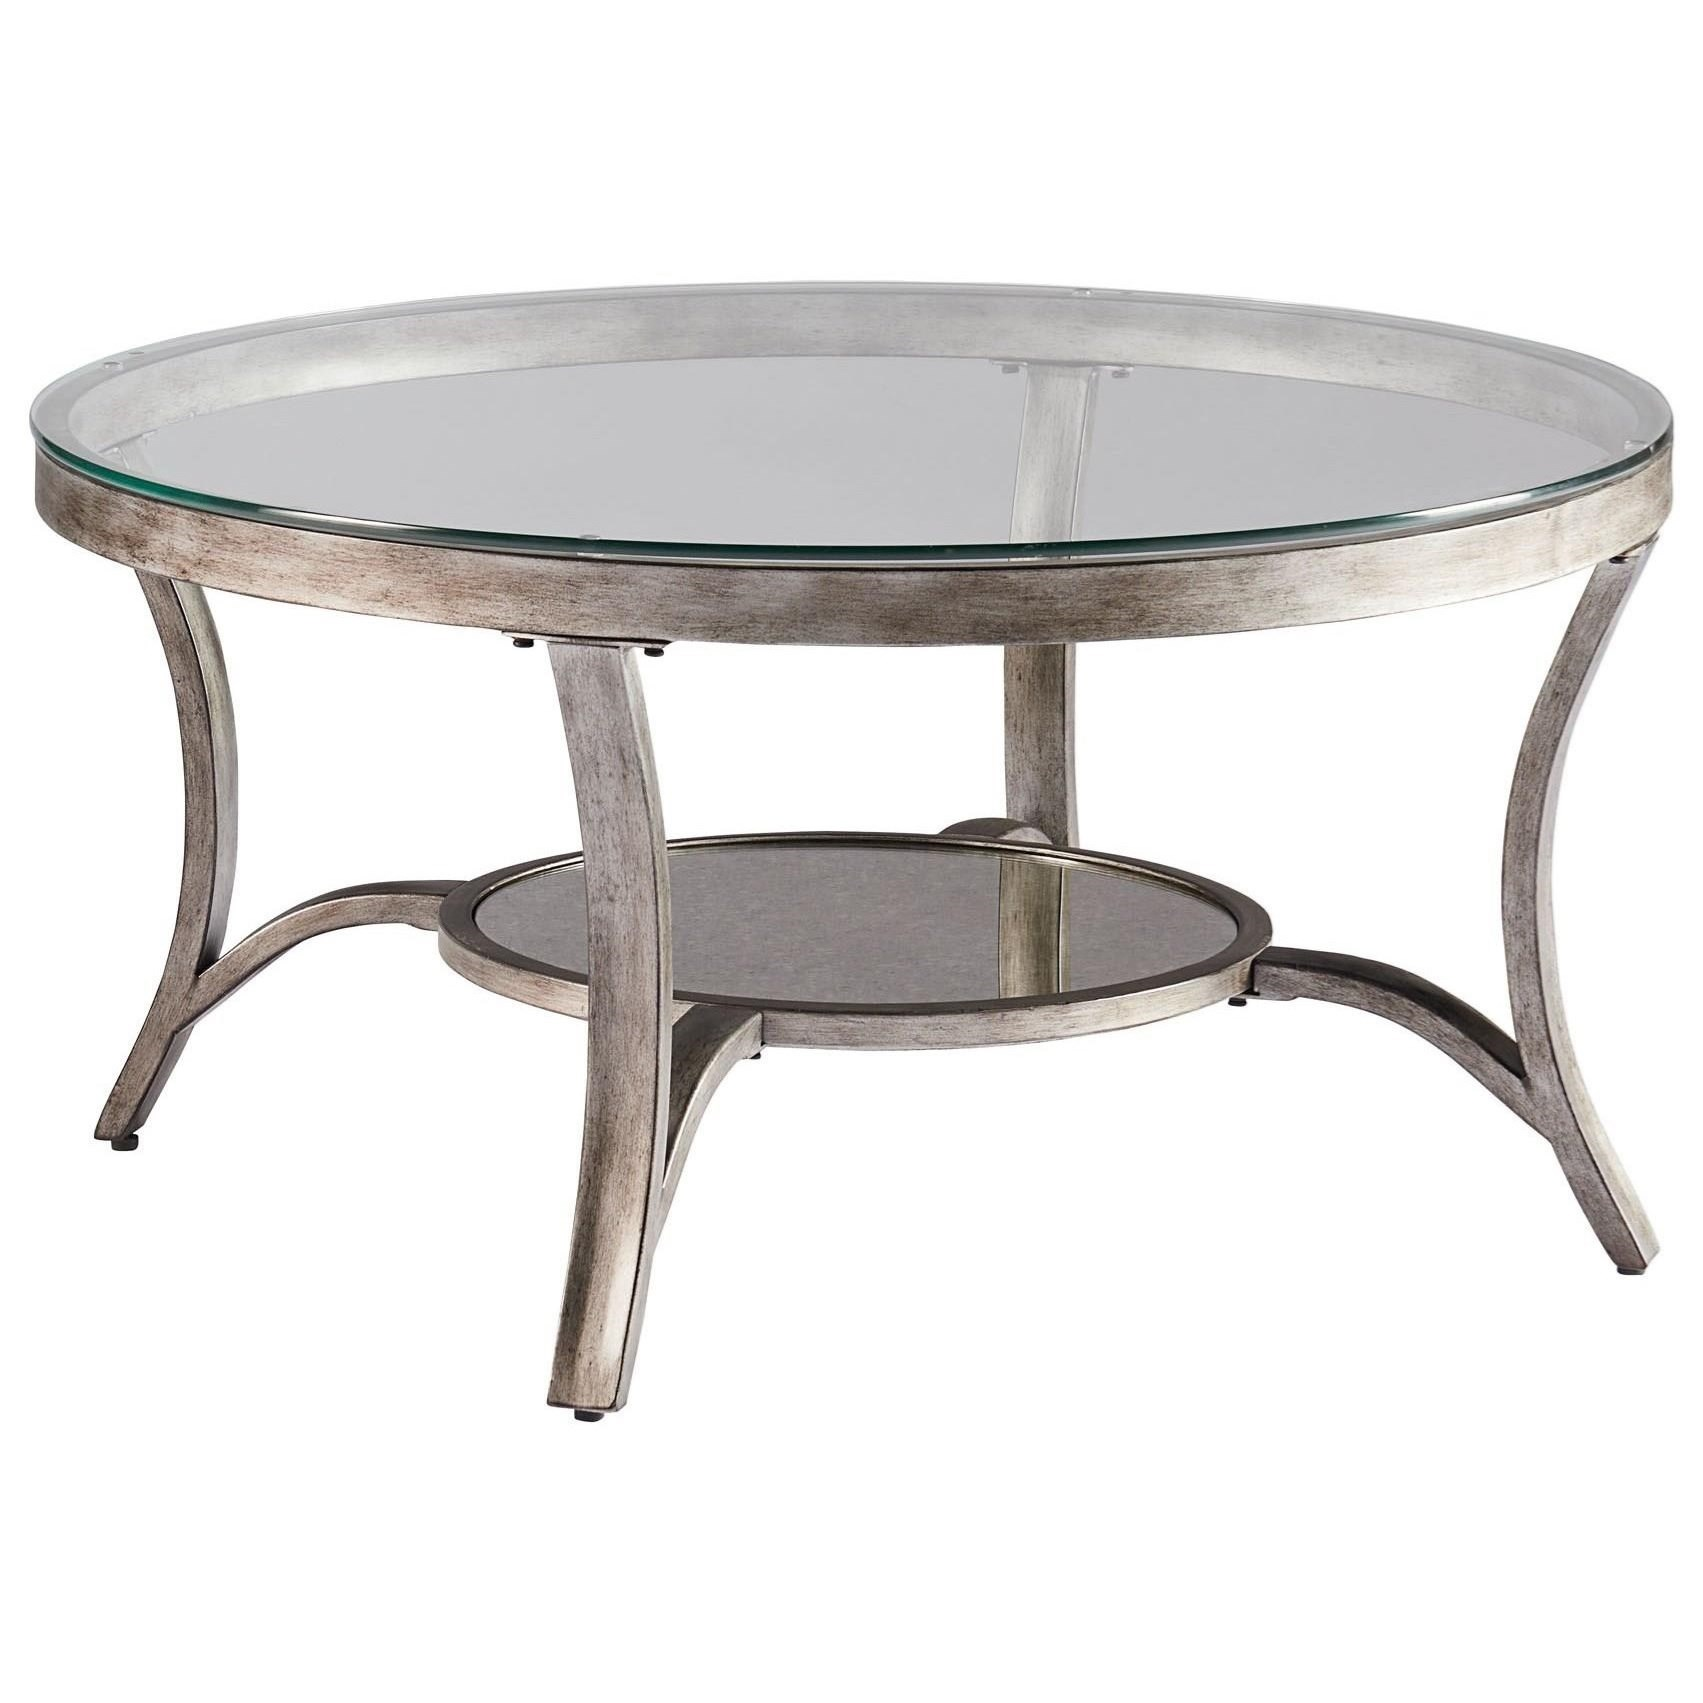 Standard Furniture Cole Round Cocktail Table - Item Number: 29301